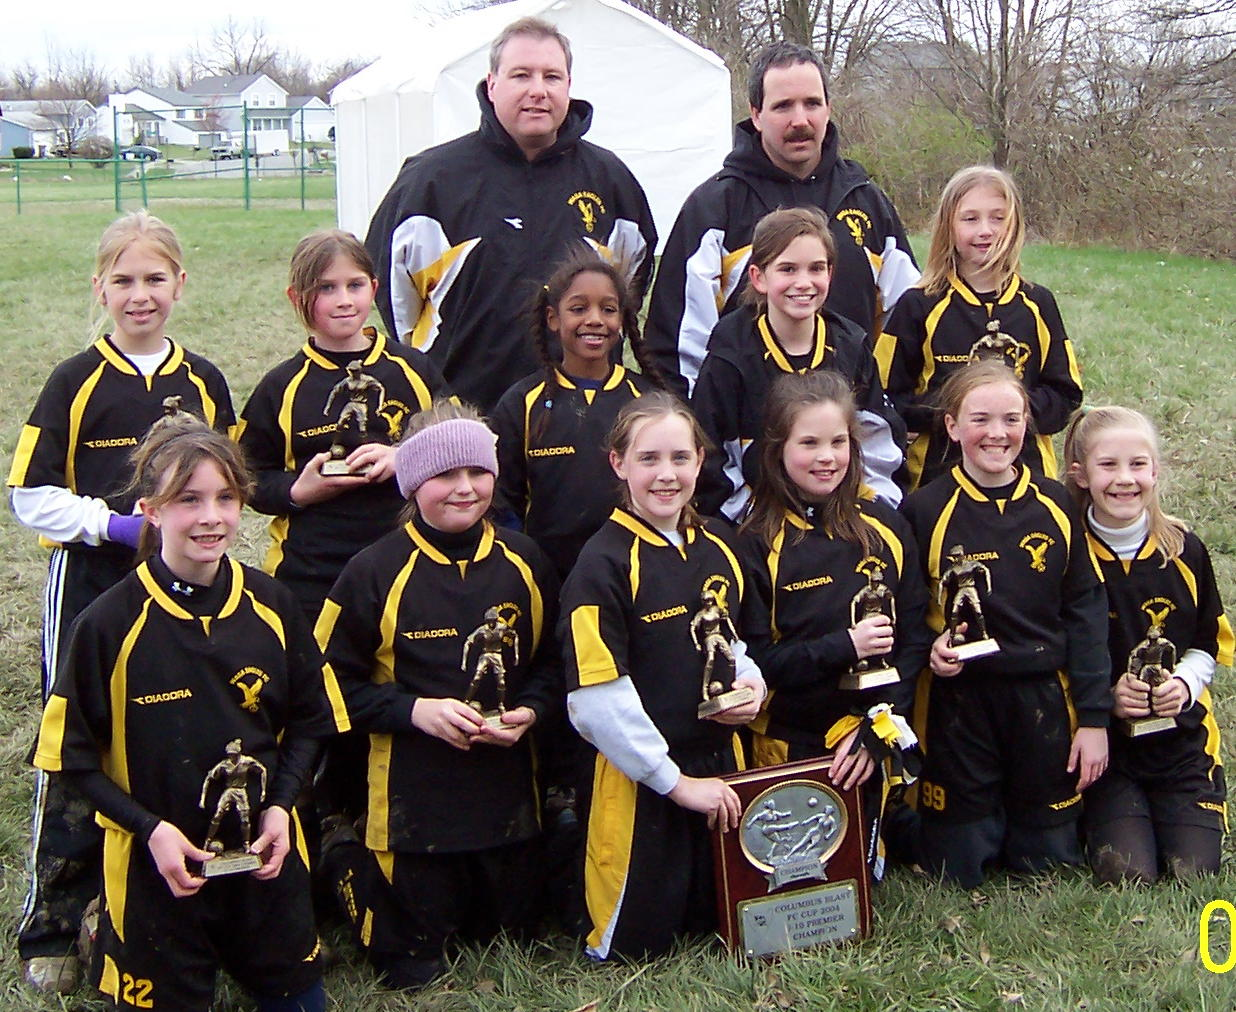 u10talongirls.jpg